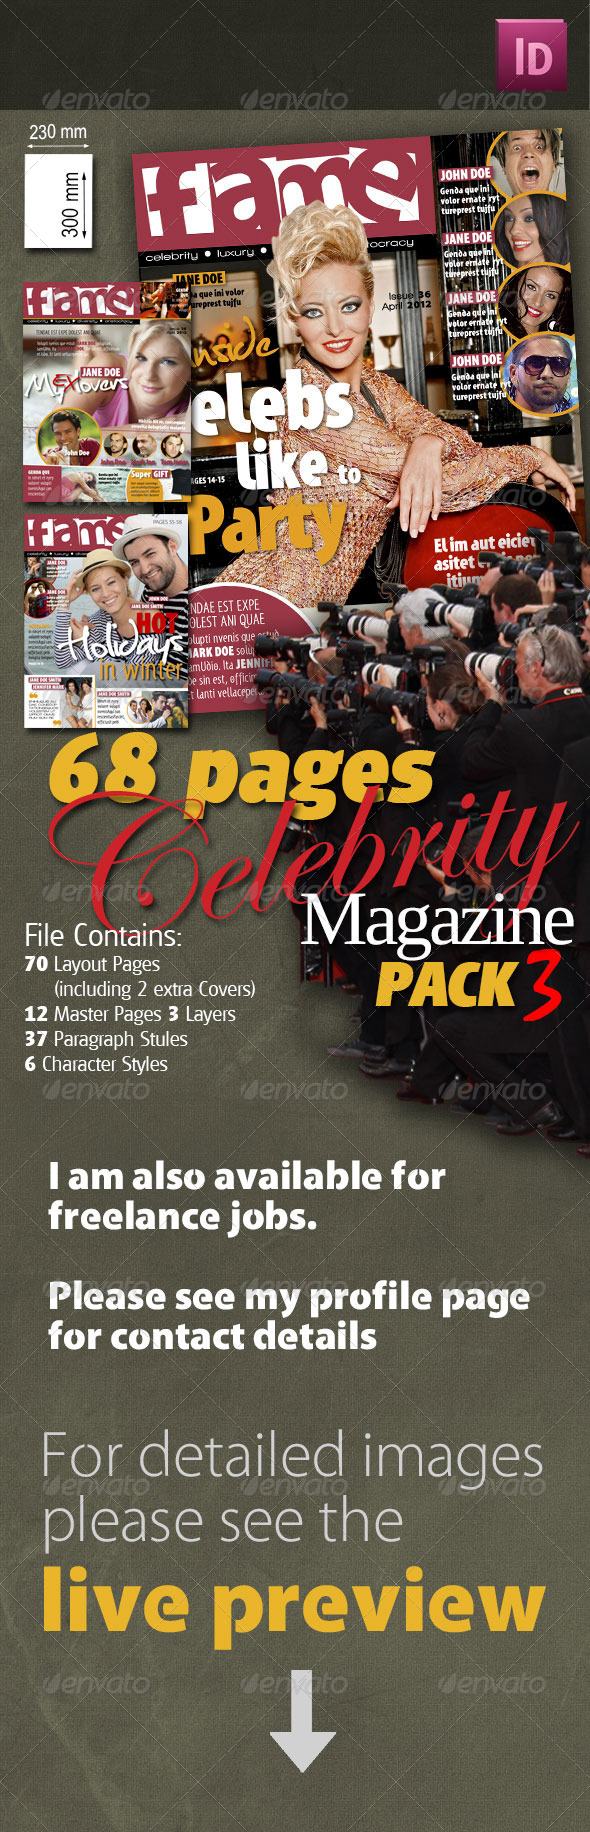 68 Pages Celebrity Magazine Pack 3 - Magazines Print Templates